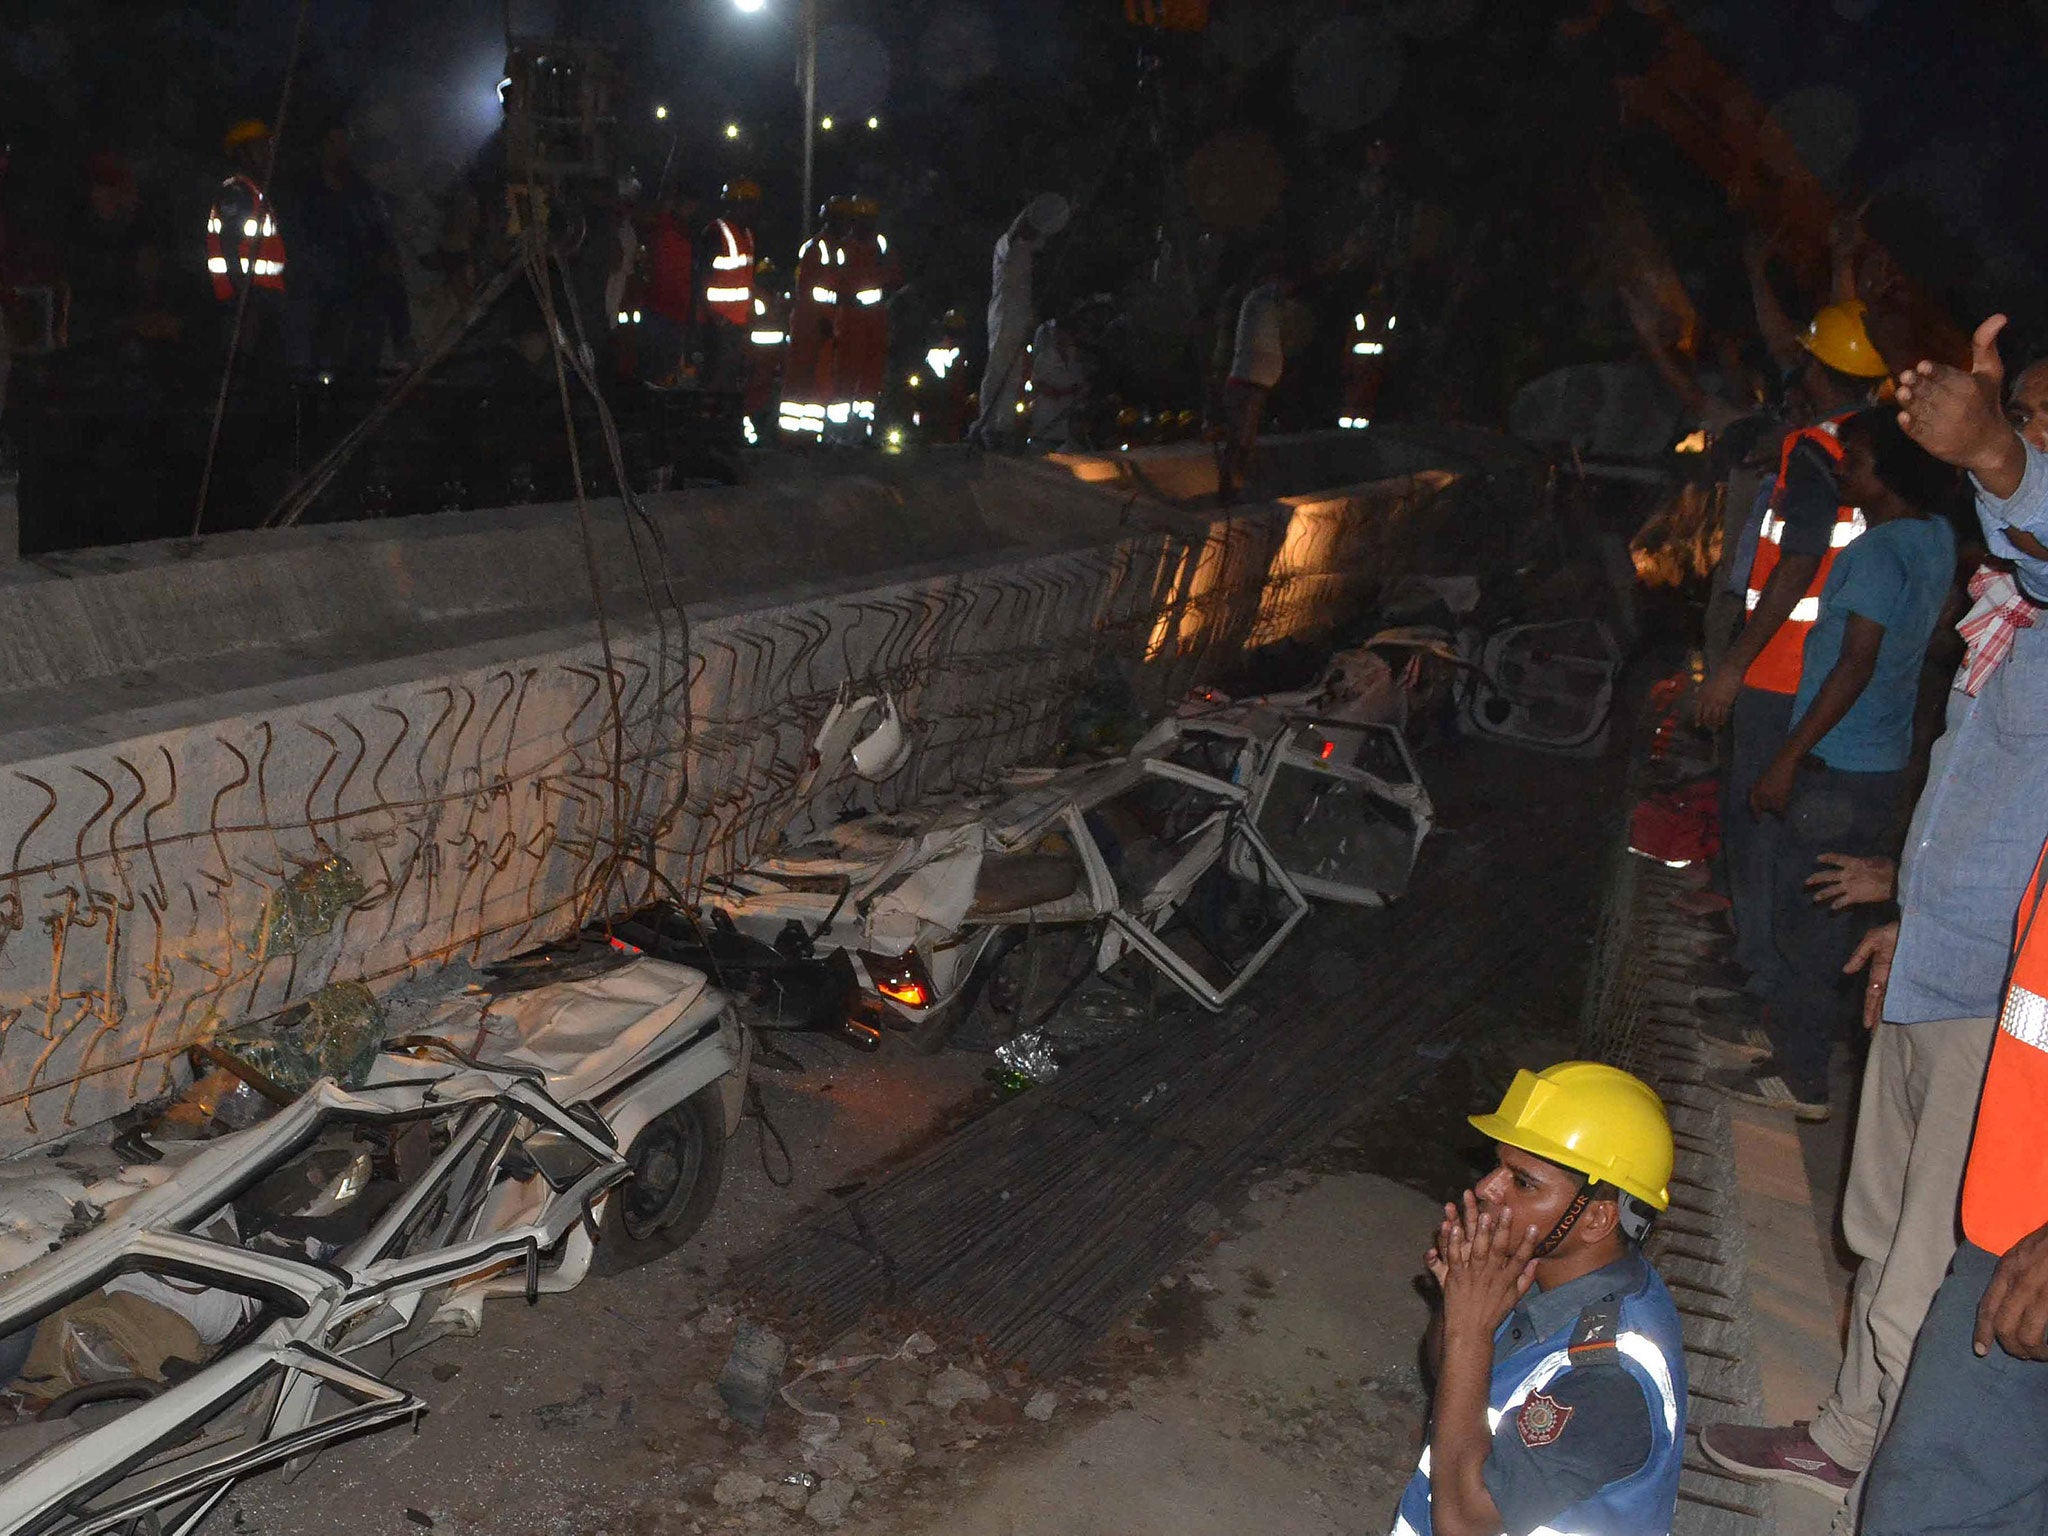 India motorway collapse kills 16 after concrete slab falls onto crowded road